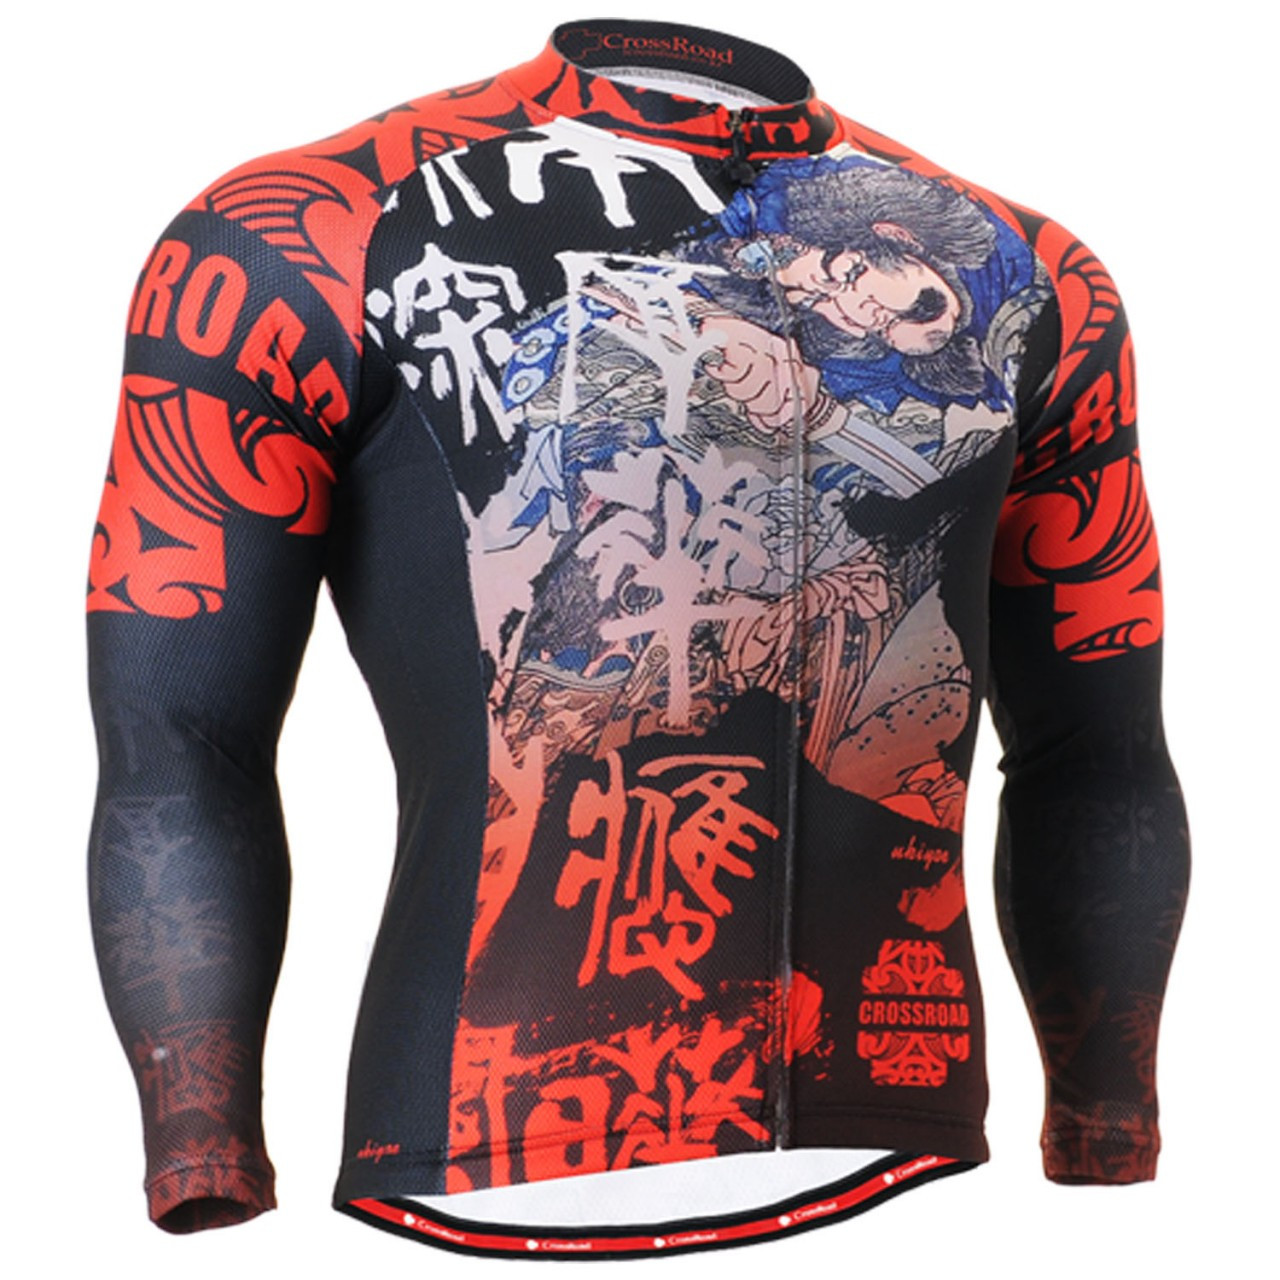 Best Cut Best Design For The Best Fit In Any Biking Jerseys - Two cycling kits worst designs ever